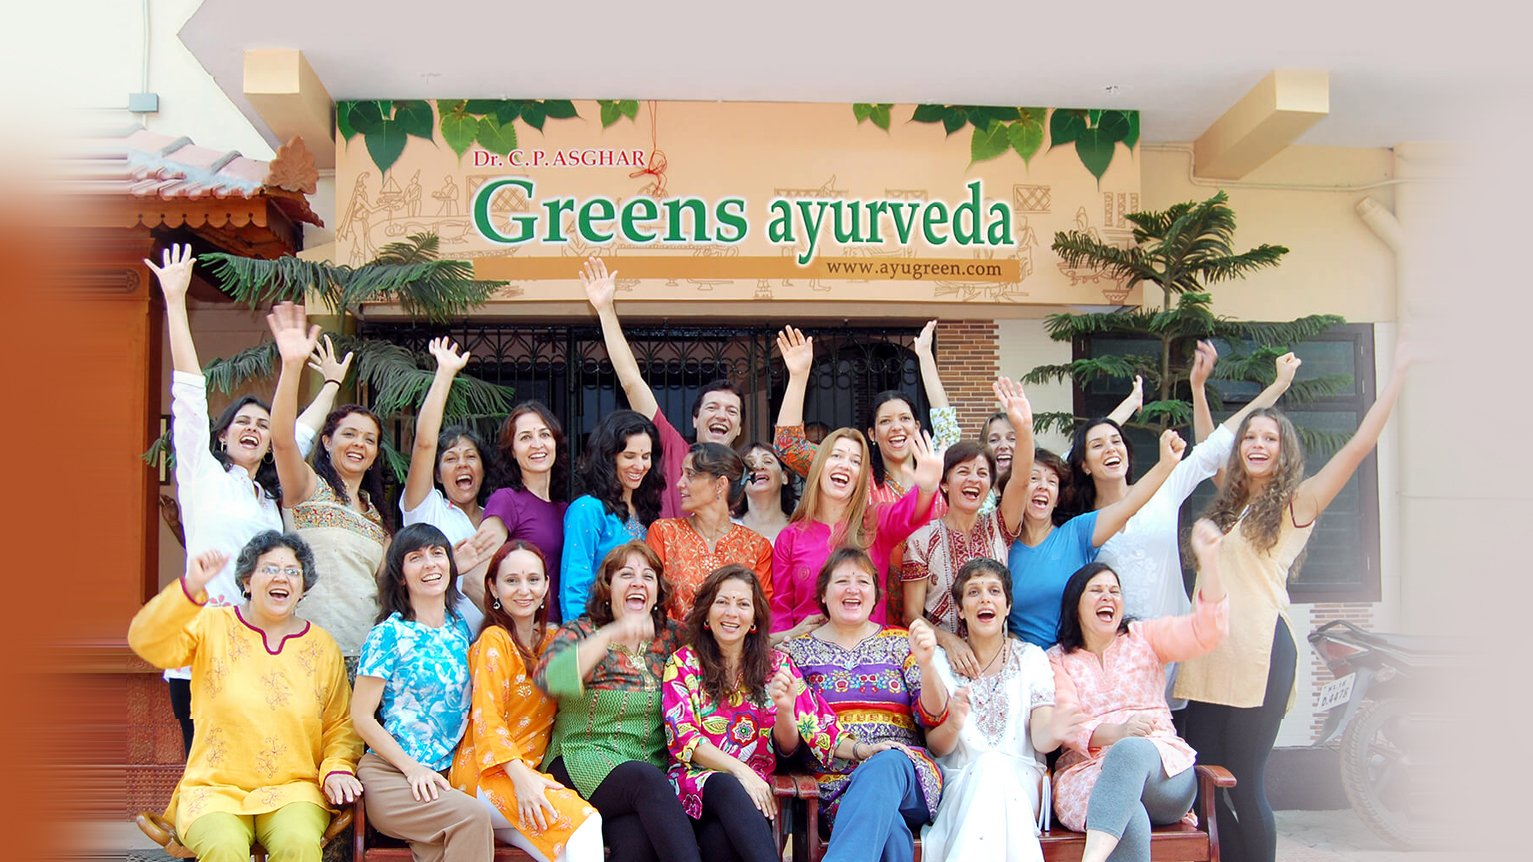 Ayurveda Training Center Kerala & Ayurvedic Courses In India